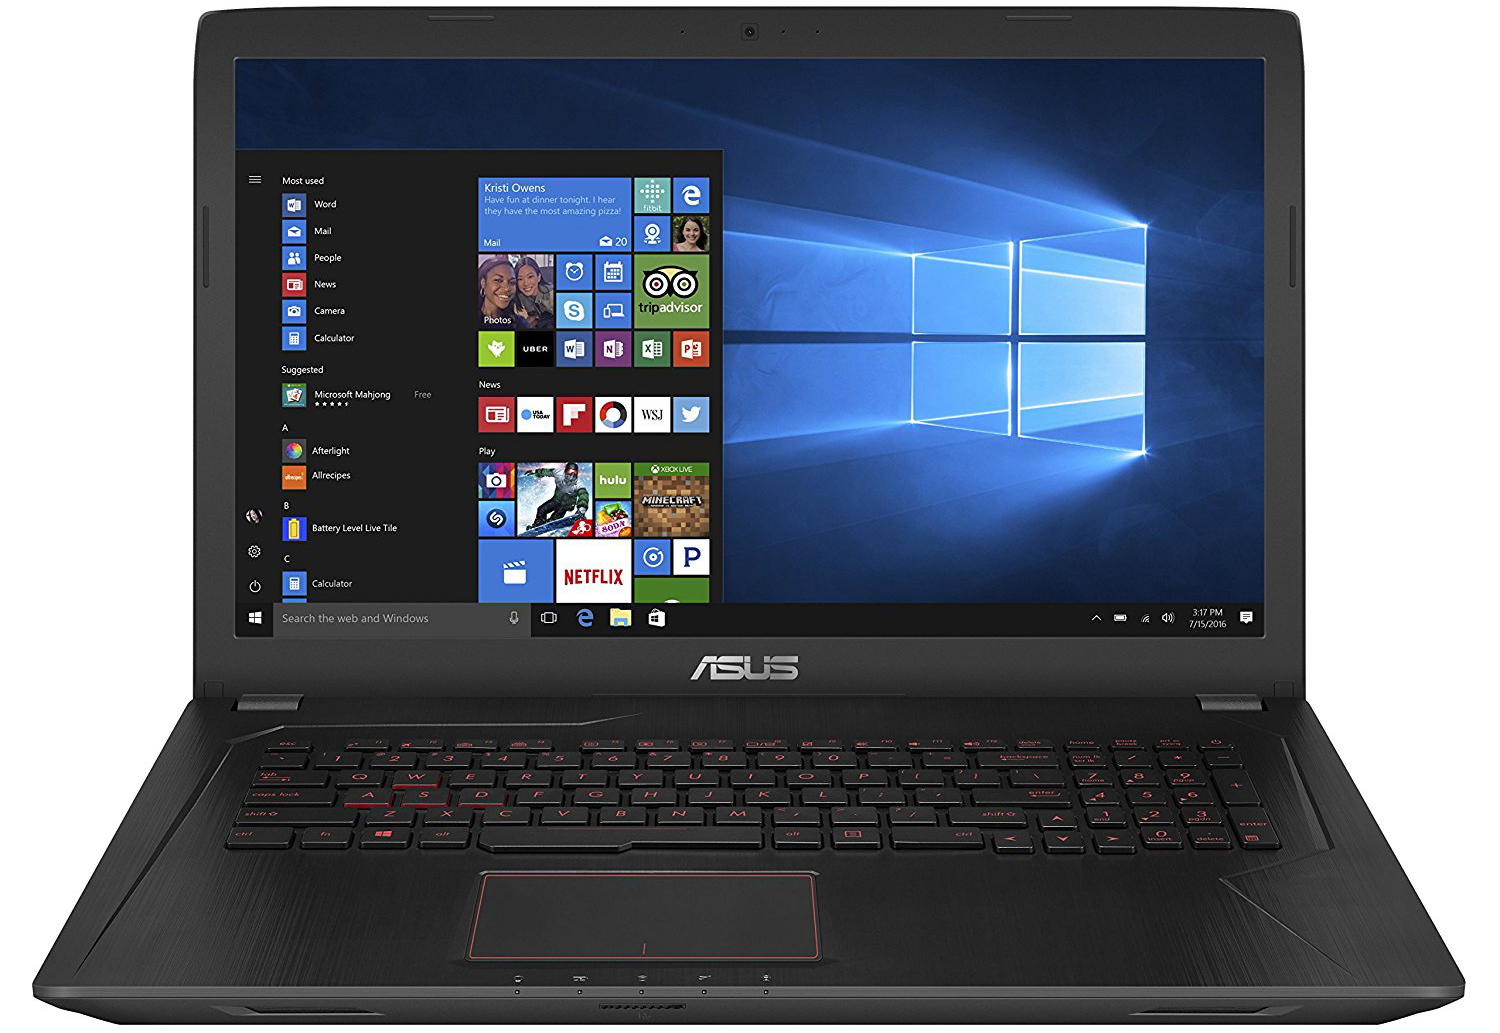 Notebook Asus FX753VD-GC193T